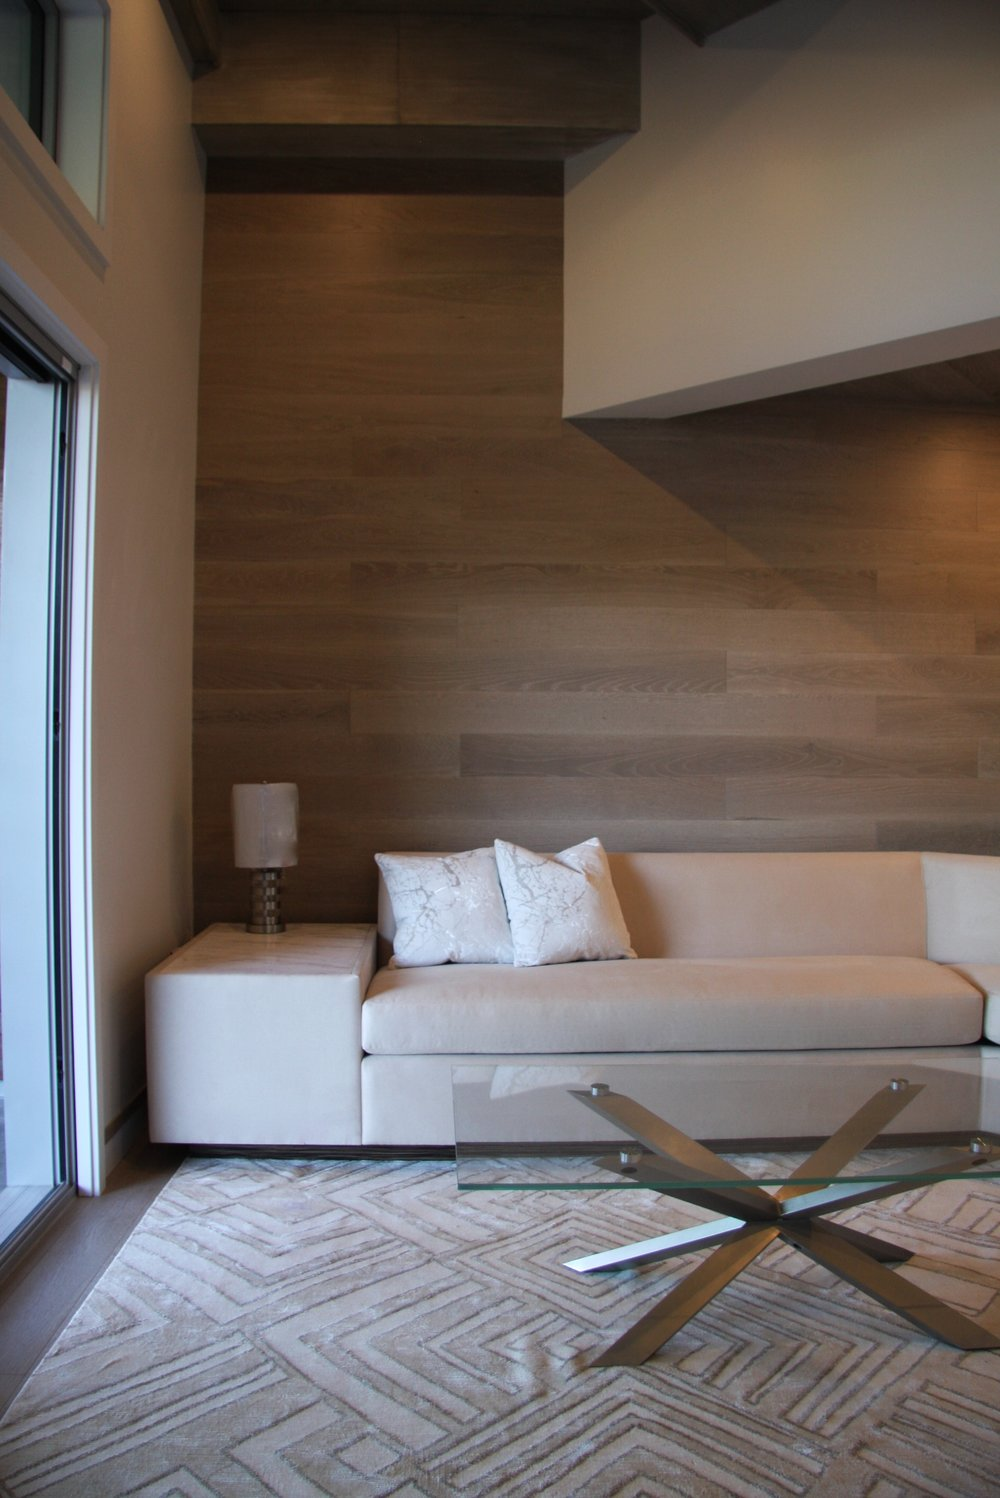 Bespoke sectional for ADC Luxury homes